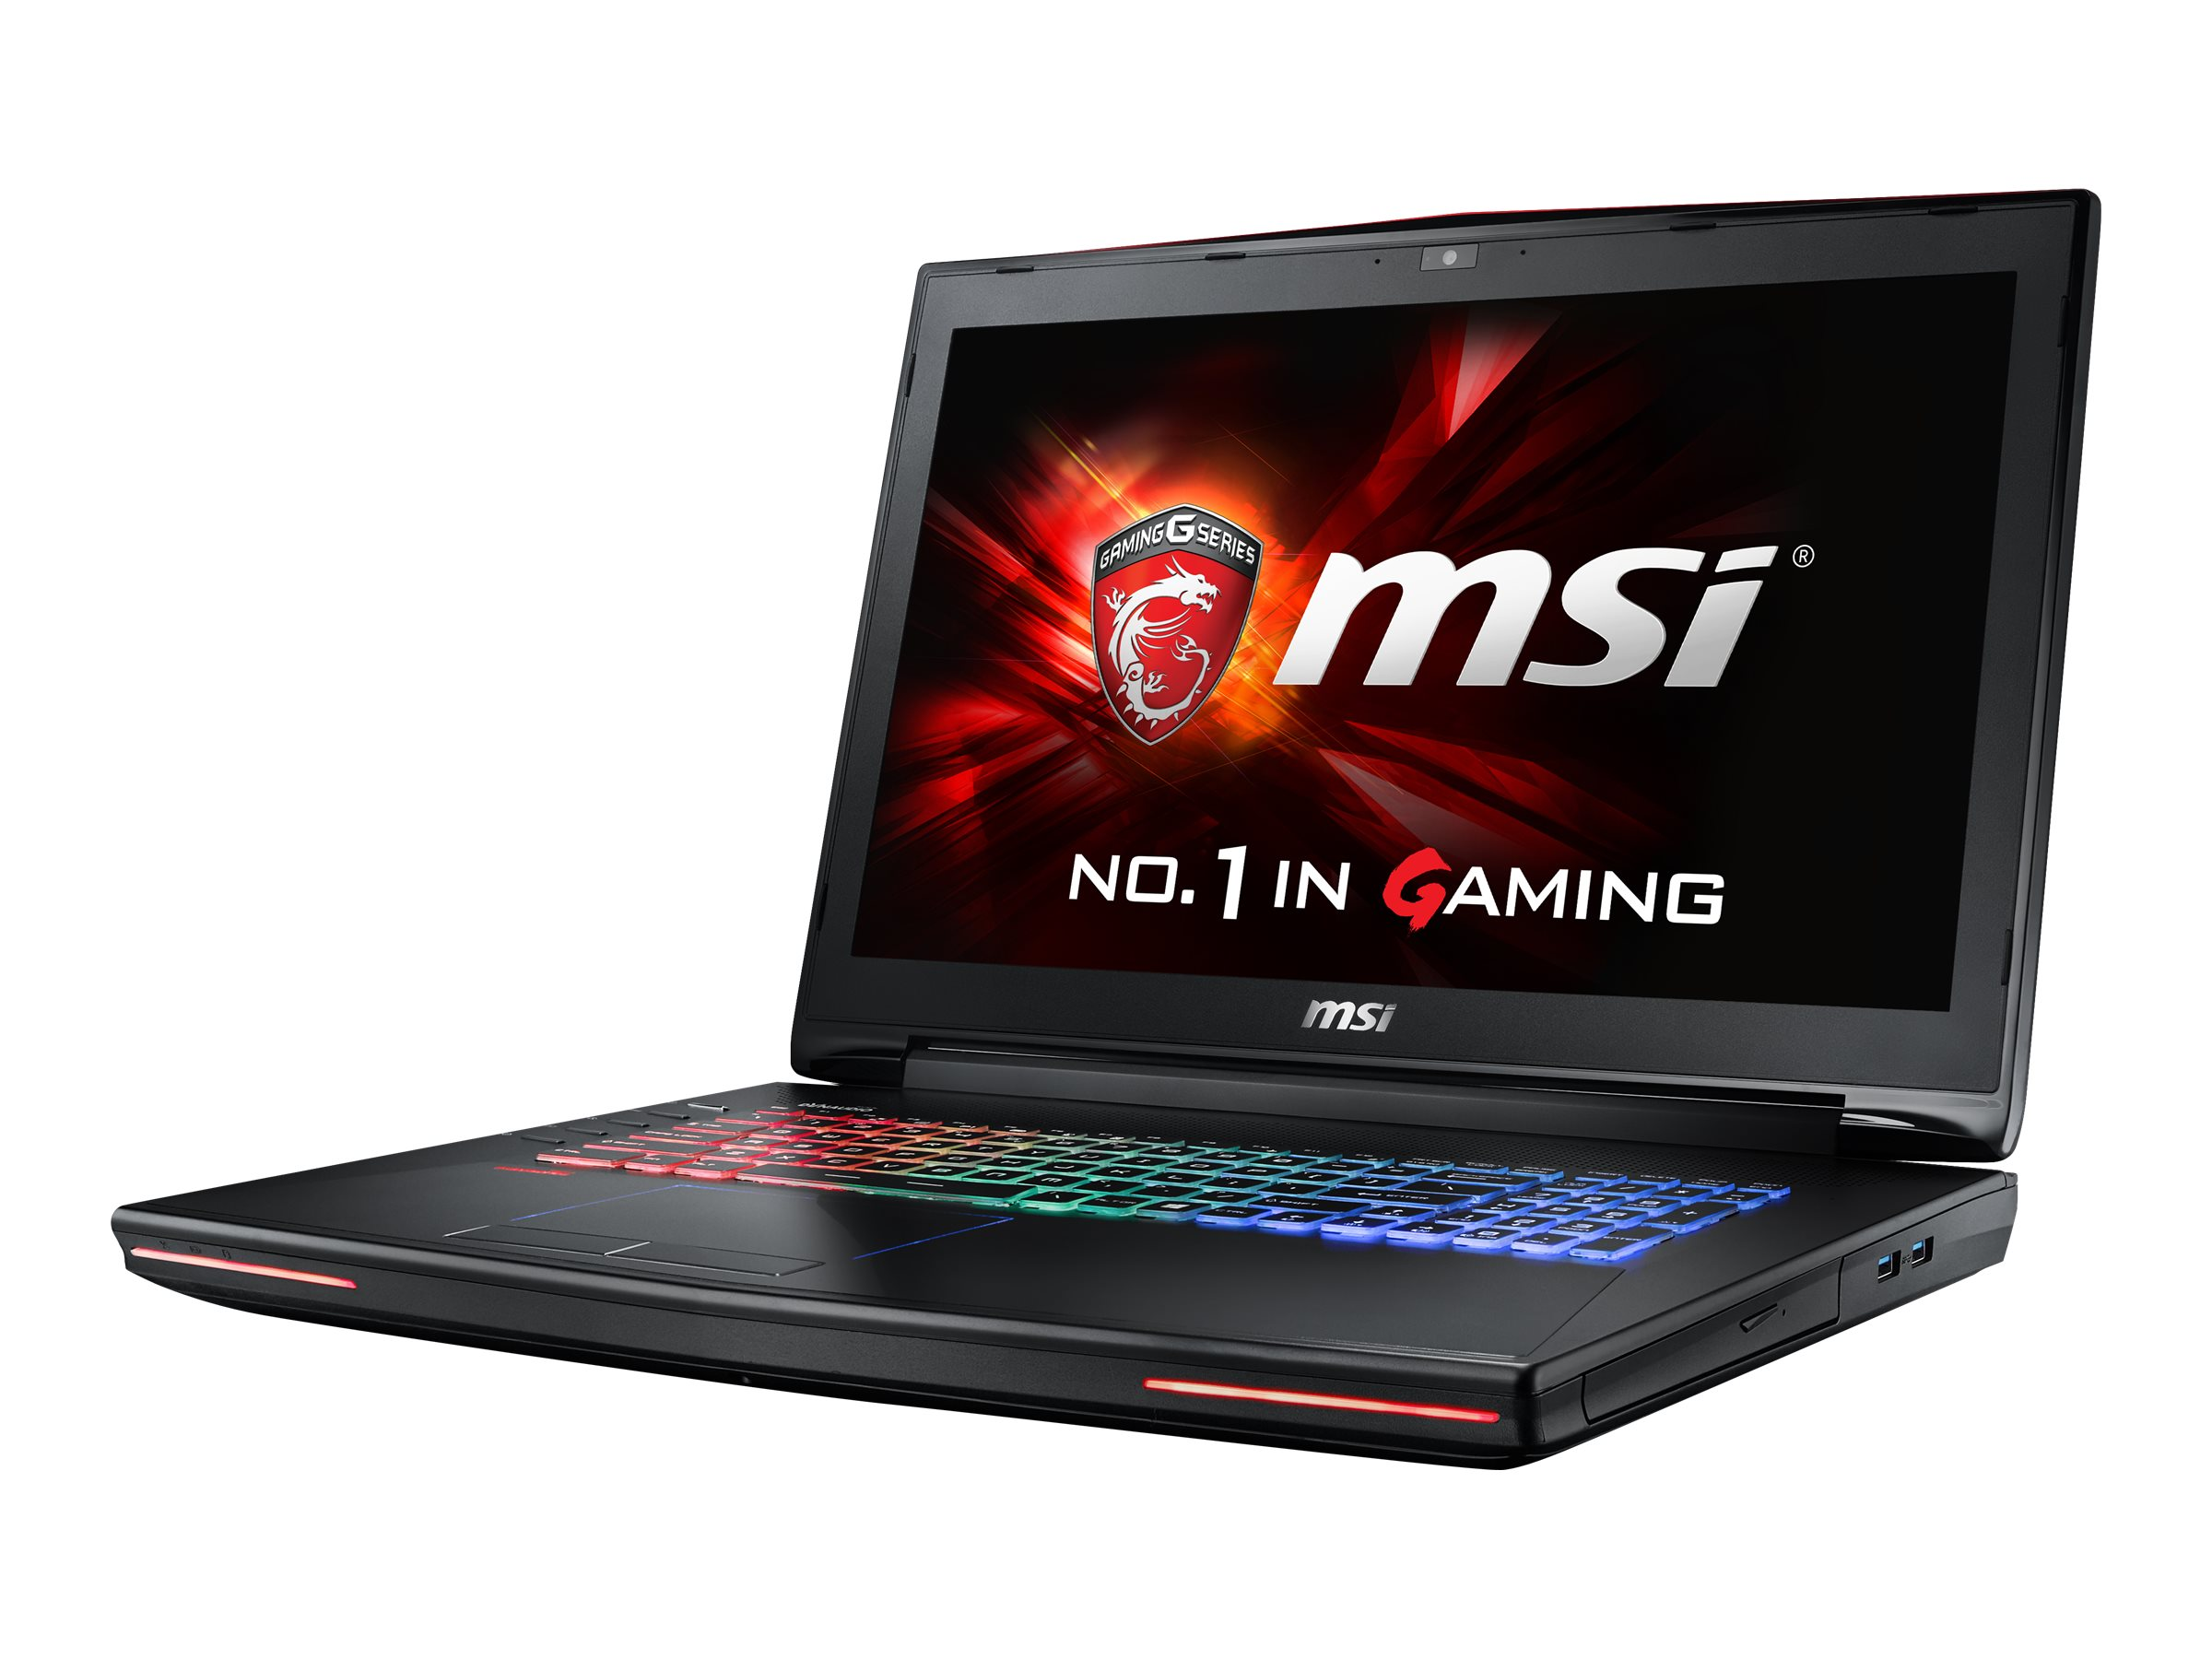 MSI GT72S Dominator Pro G-041 Core i7-6920HQ 2.9GHz 32GB 1TB+256GB BR ac BT WC GTX 980 17.3 FHD W10, GT72S DOMINATOR PRO G-041, 31391737, Notebooks